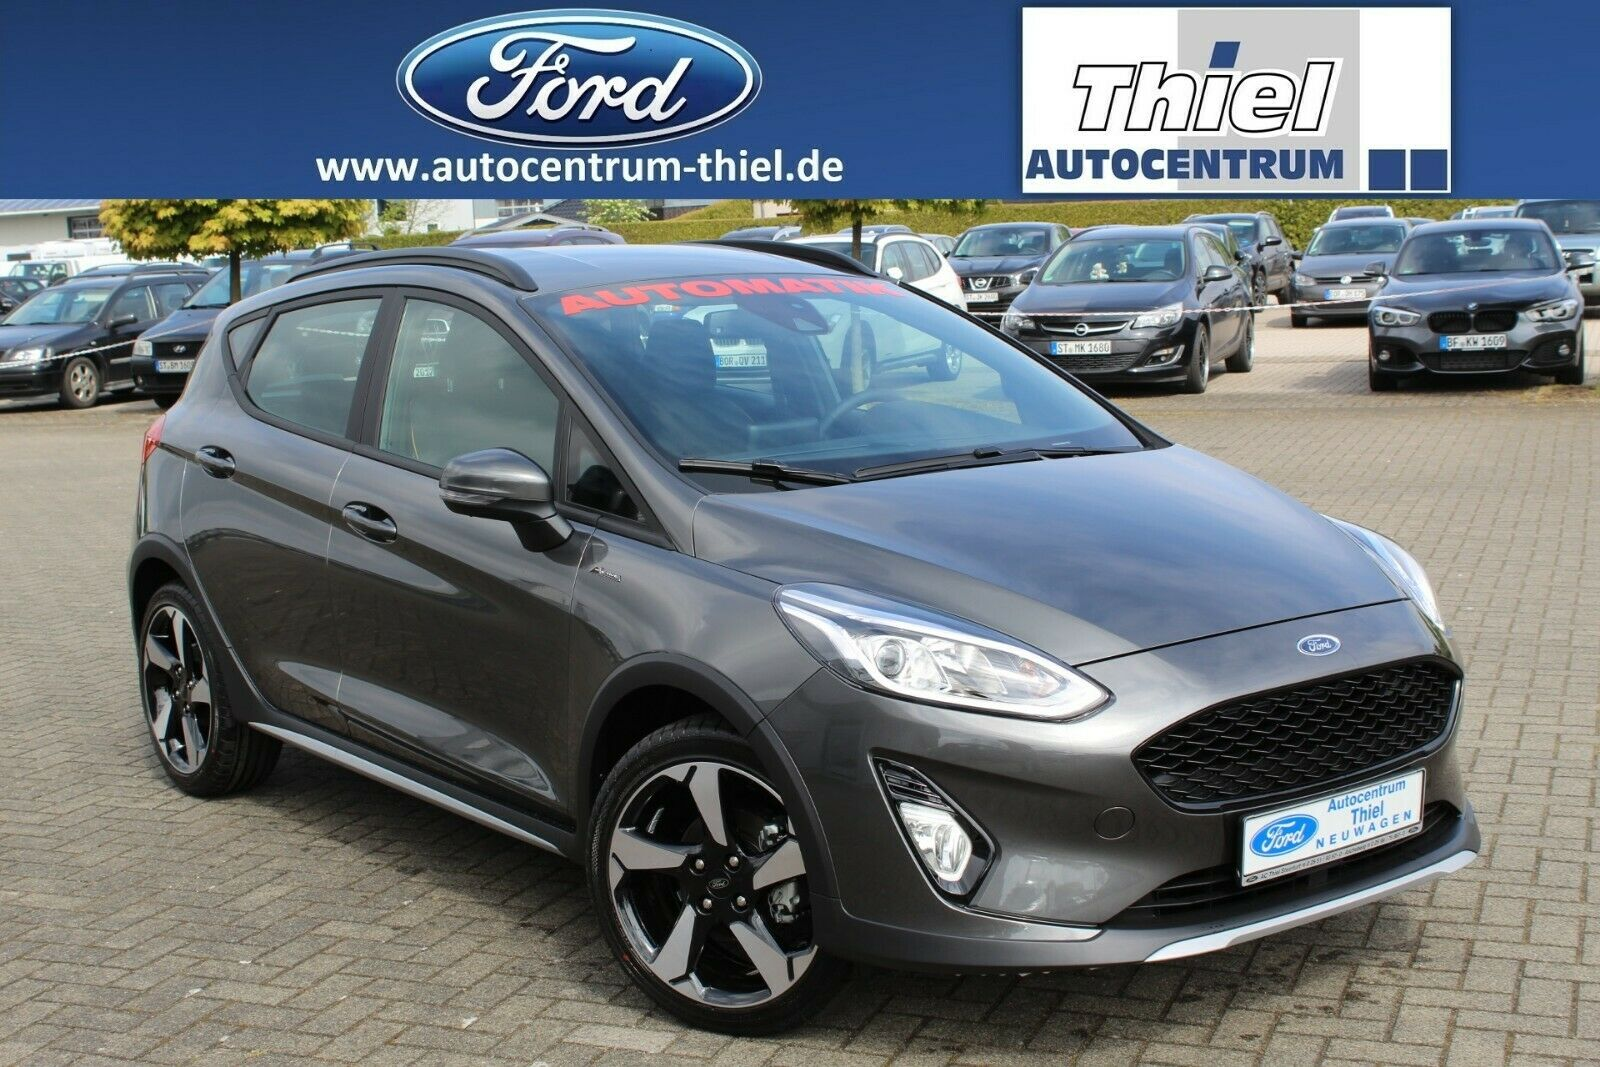 FORD Fiesta 100 PS Active Colourline AUTOMATIK